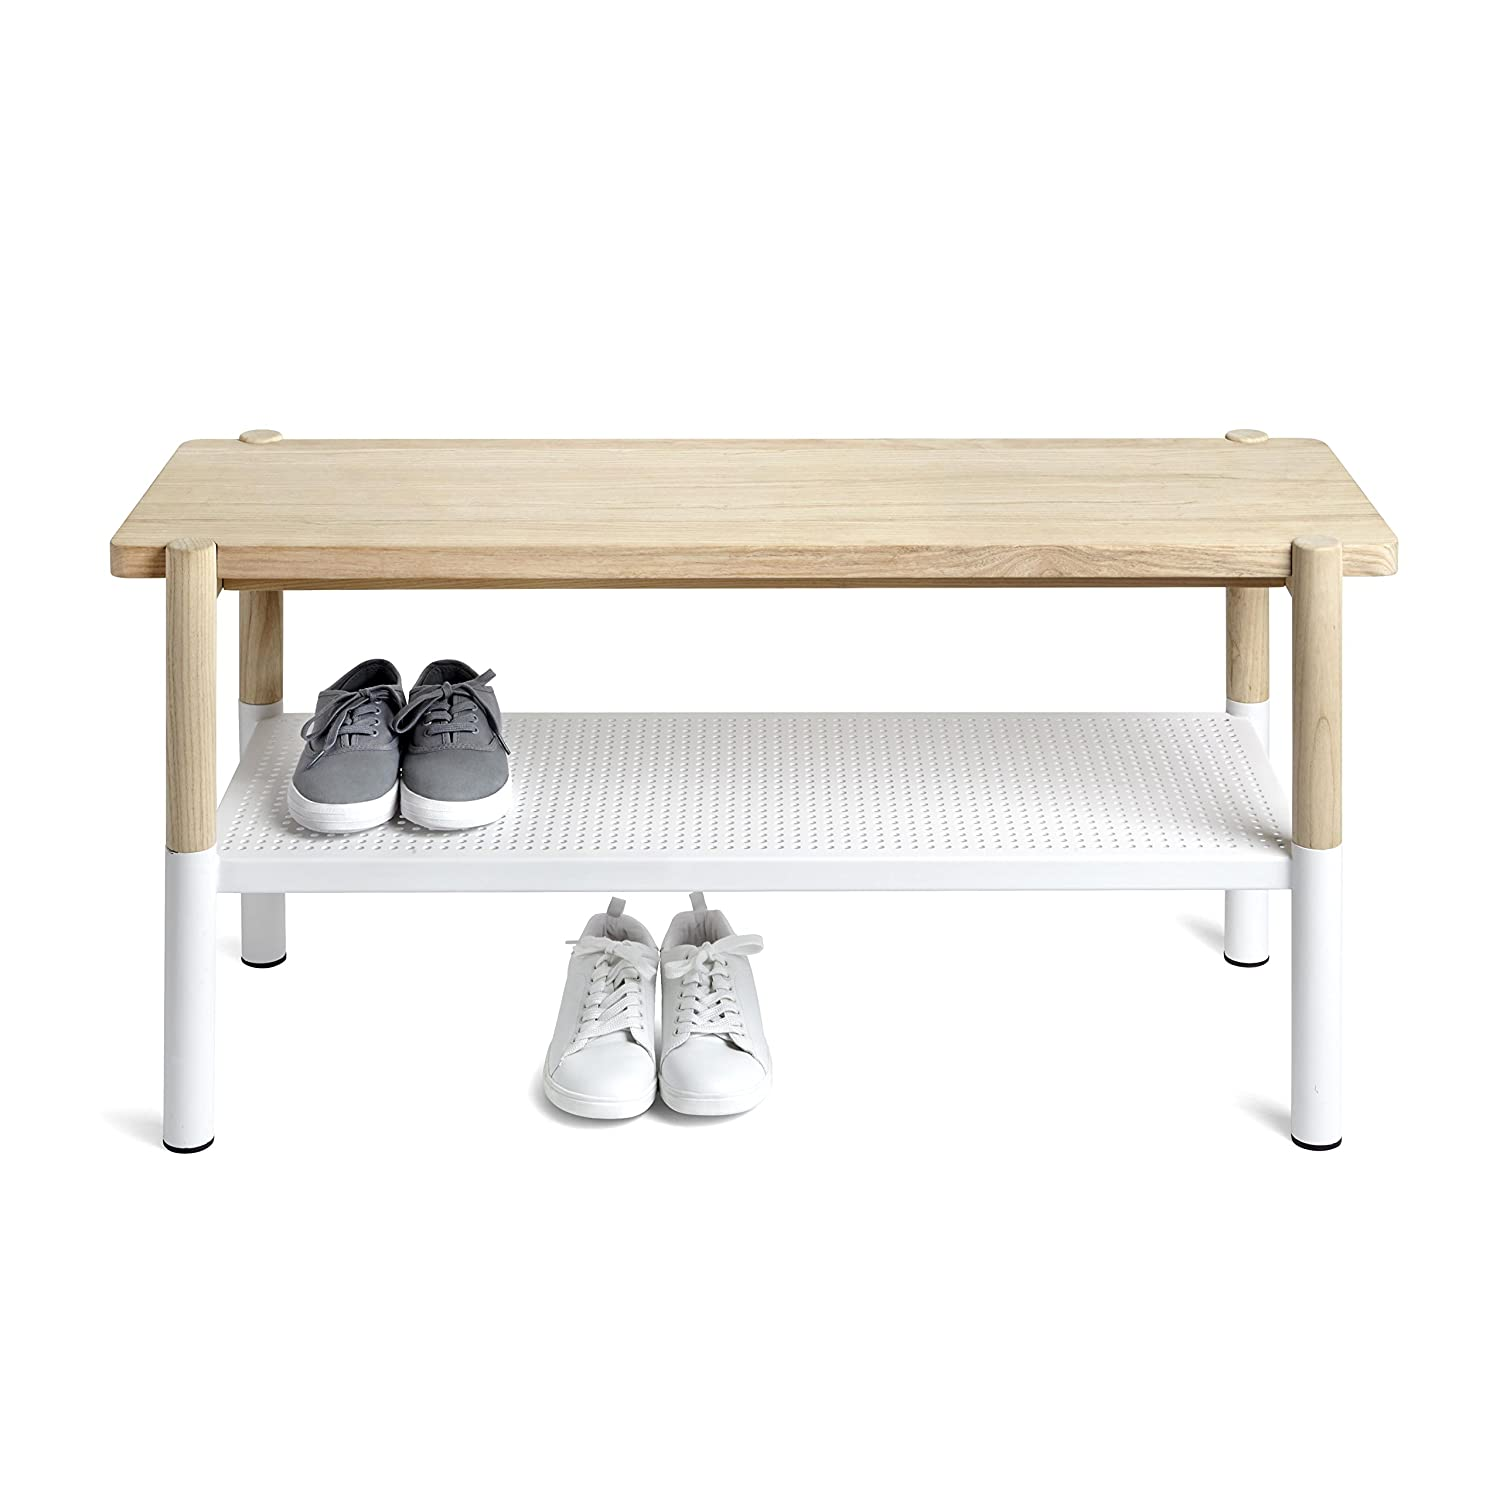 Umbra Promenade Bench, White/Natural 320800-668